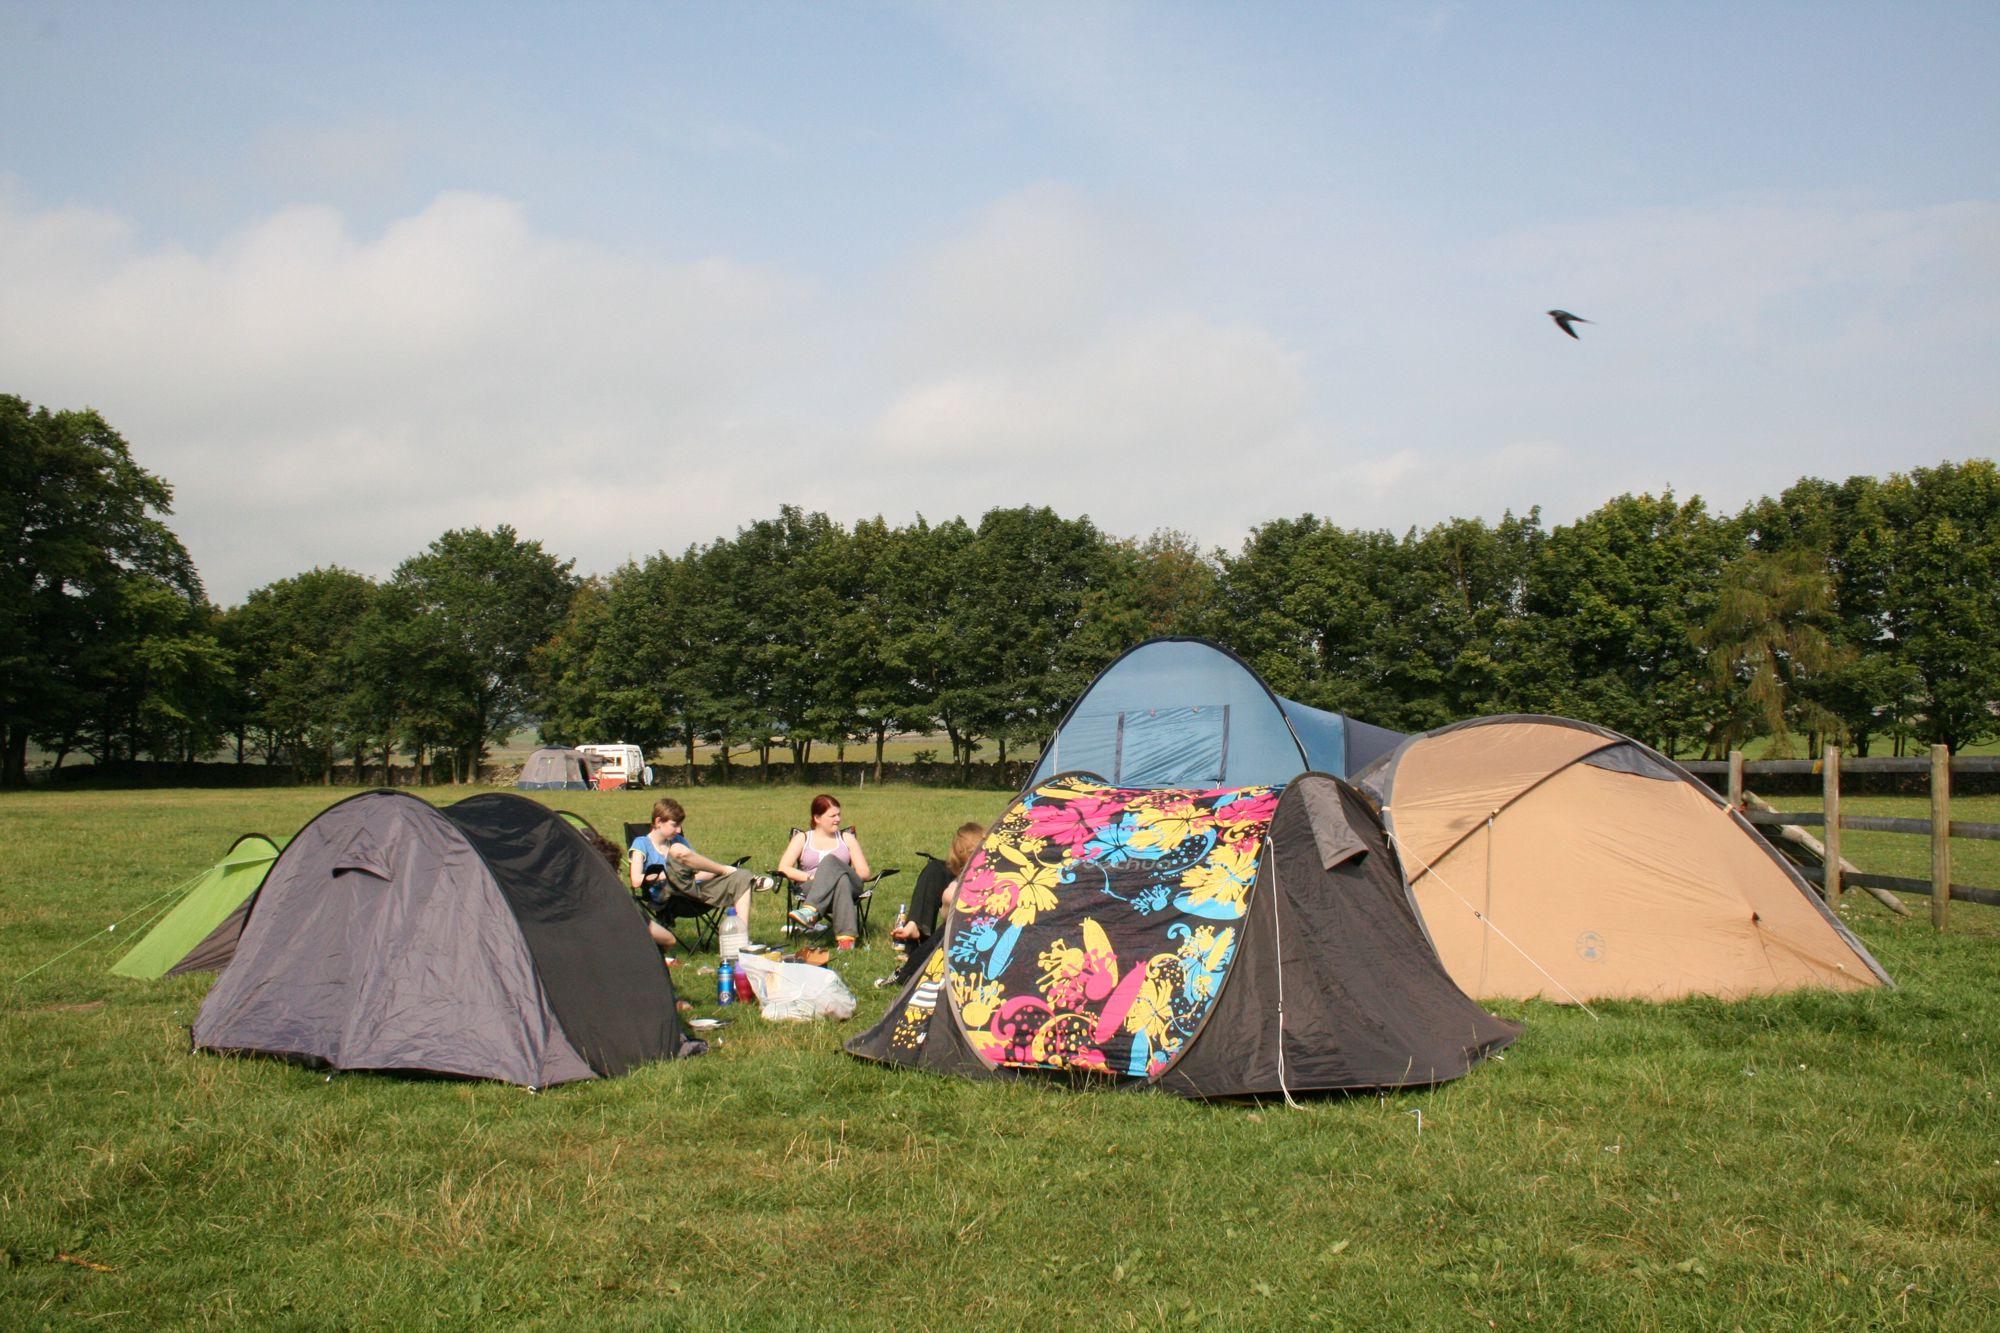 Bakewell Camping | Best campsites in Bakewell, Derbyshire